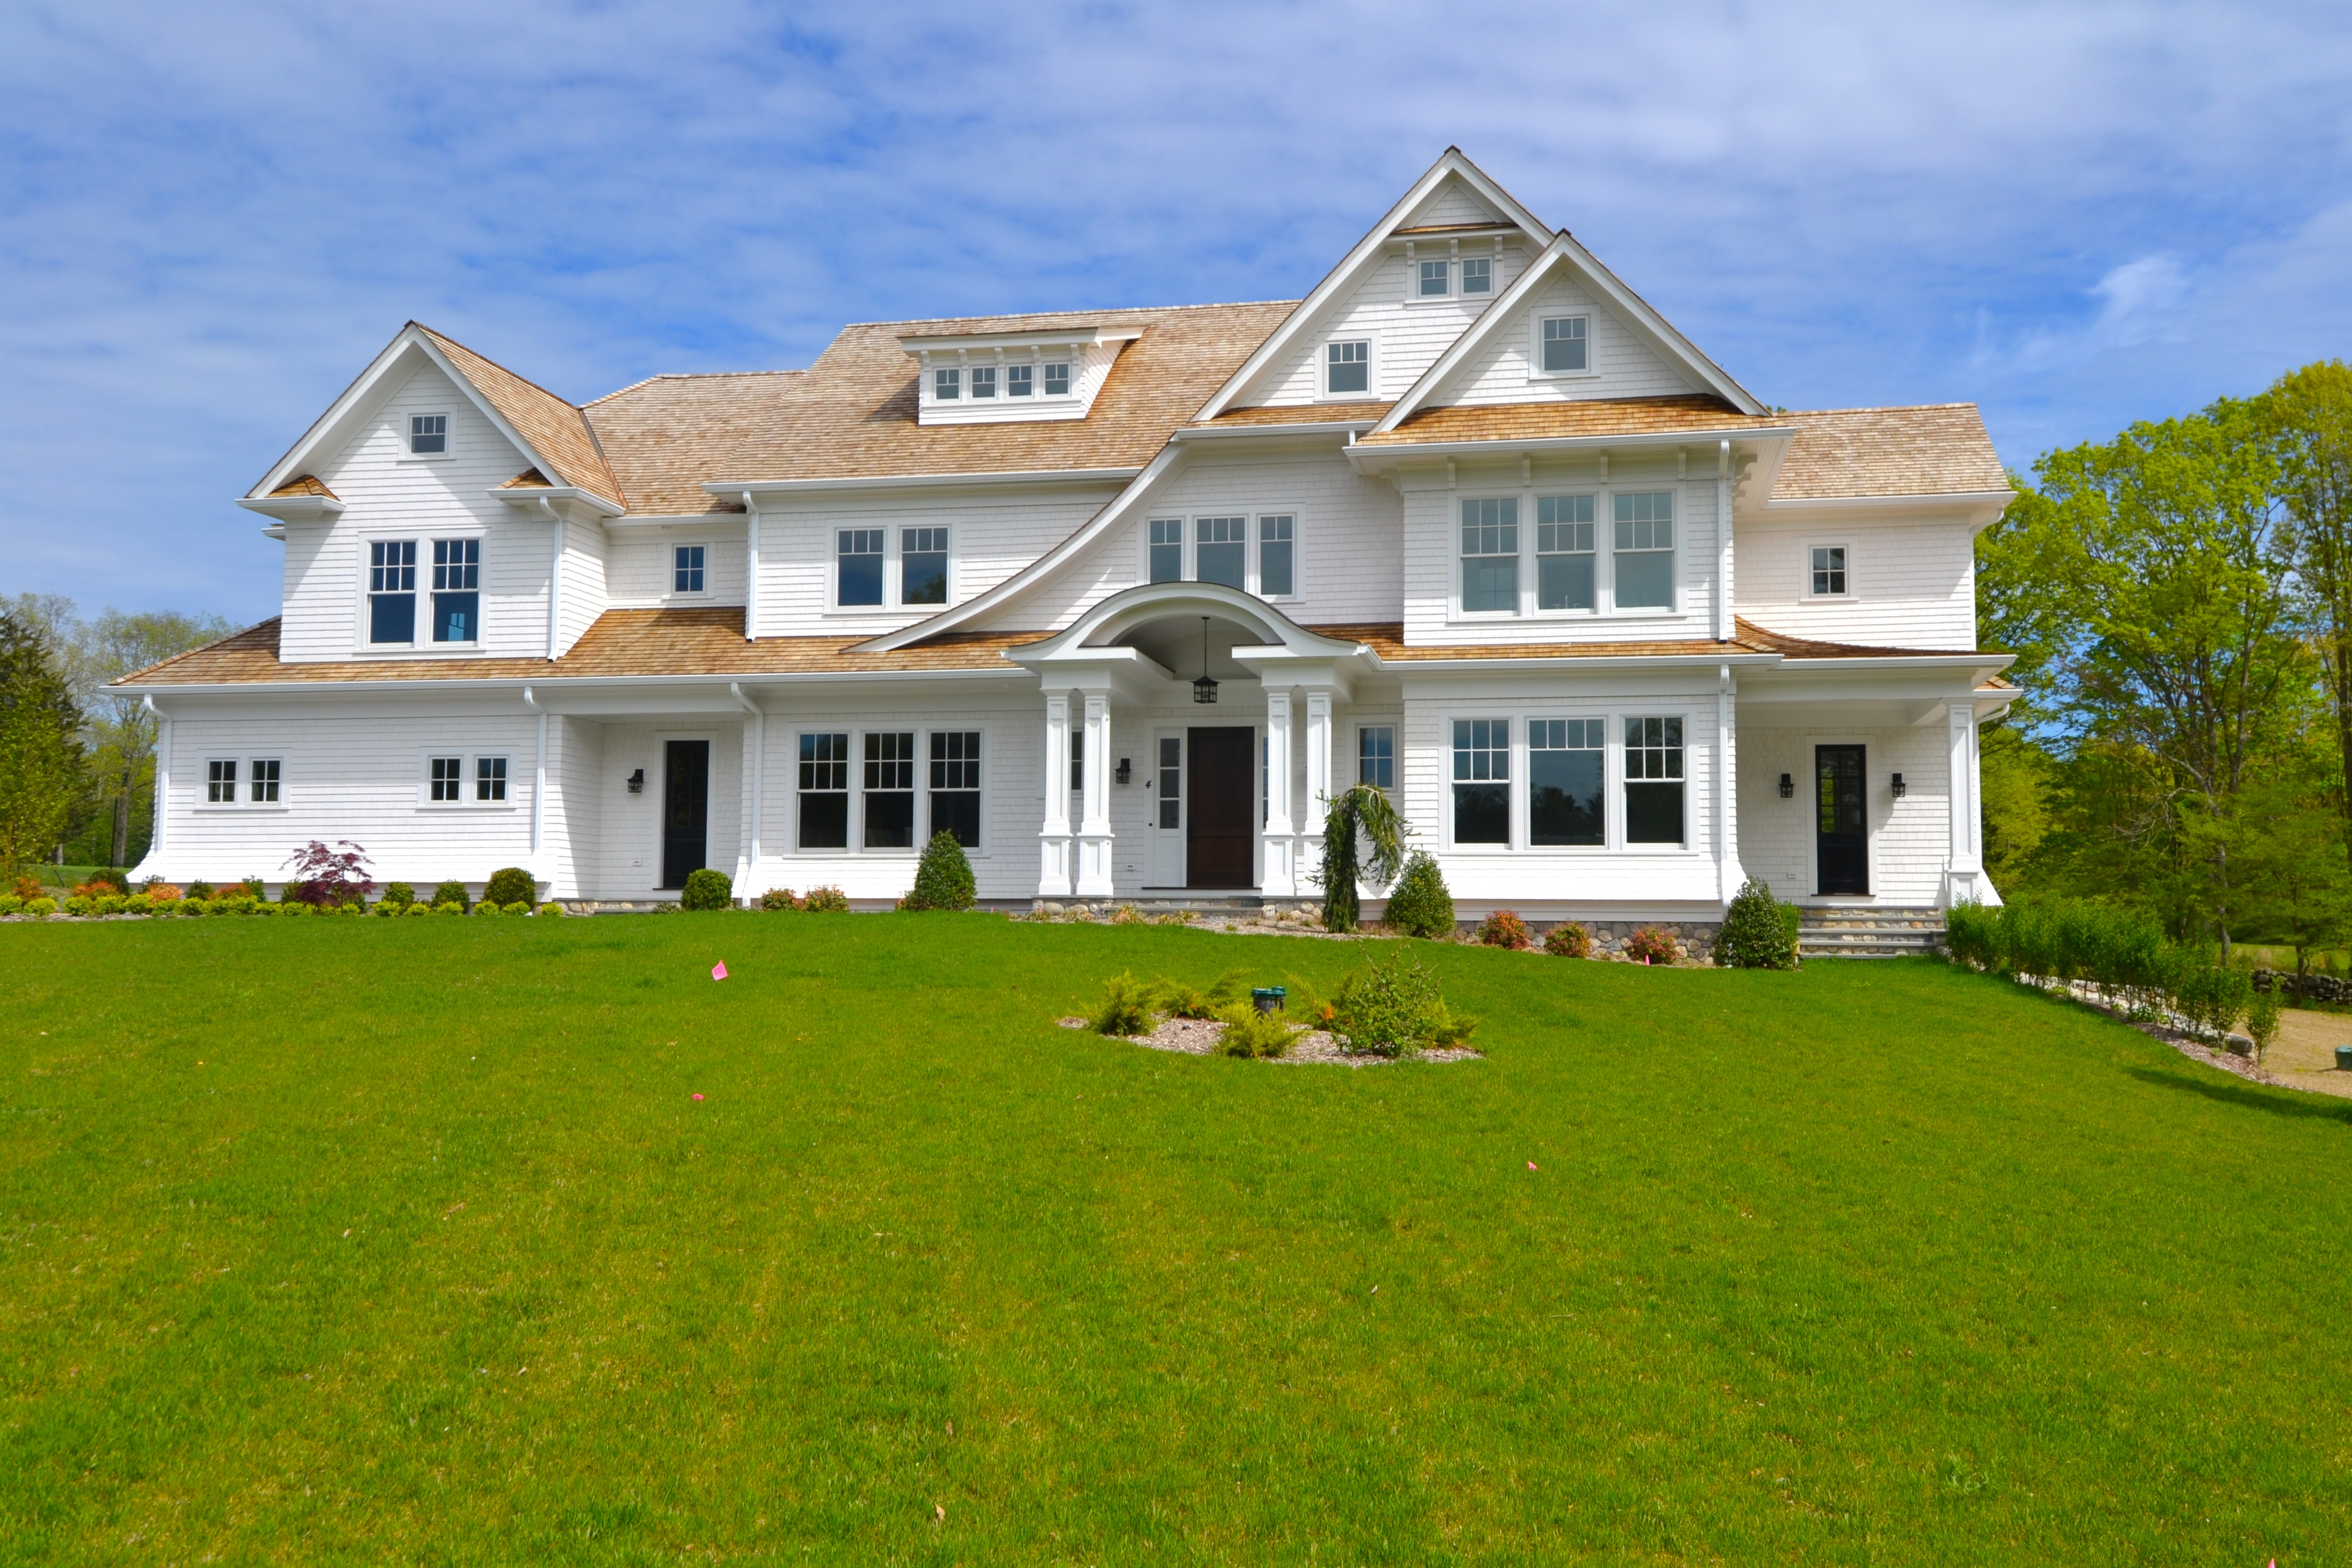 Single Family Home for Sale at New Construction 4 Middlebrook Lane Wilton, Connecticut, 06897 United States